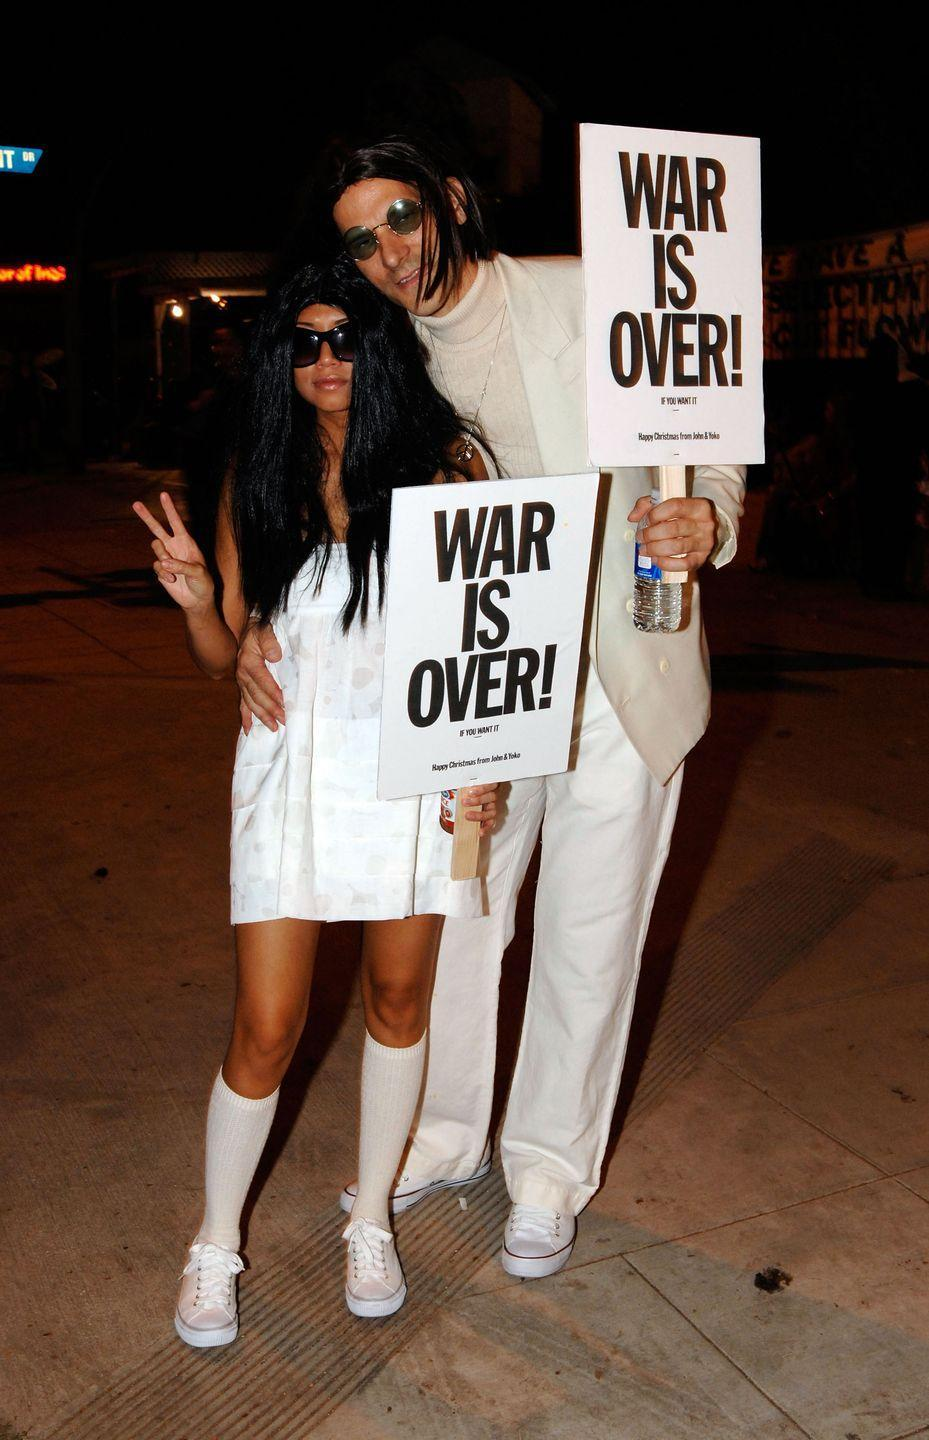 """<p>Channel one of the most iconic couples from the '70s with matching """"War Is Over!"""" signs and all-white ensembles. </p><p><a class=""""link rapid-noclick-resp"""" href=""""https://www.amazon.com/NIEEPA-Vintage-Polarized-Sunglasses-Glasses/dp/B0768B82VQ?tag=syn-yahoo-20&ascsubtag=%5Bartid%7C10070.g.23122163%5Bsrc%7Cyahoo-us"""" rel=""""nofollow noopener"""" target=""""_blank"""" data-ylk=""""slk:SHOP ROUND SUNGLASSES"""">SHOP ROUND SUNGLASSES</a></p>"""